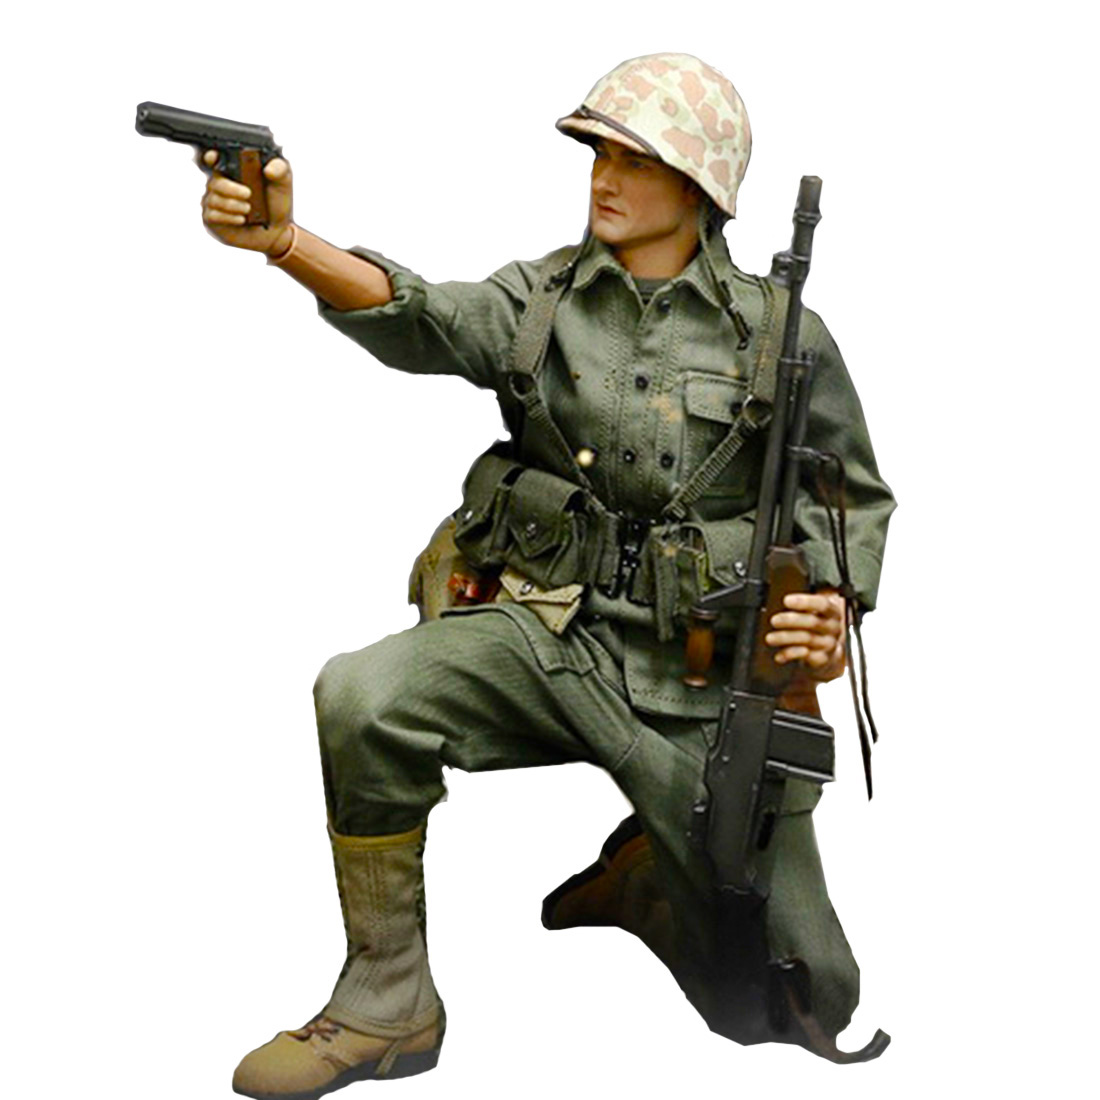 1//6th scale toy accessory 1 Alert Line German metal helmet with camo cover